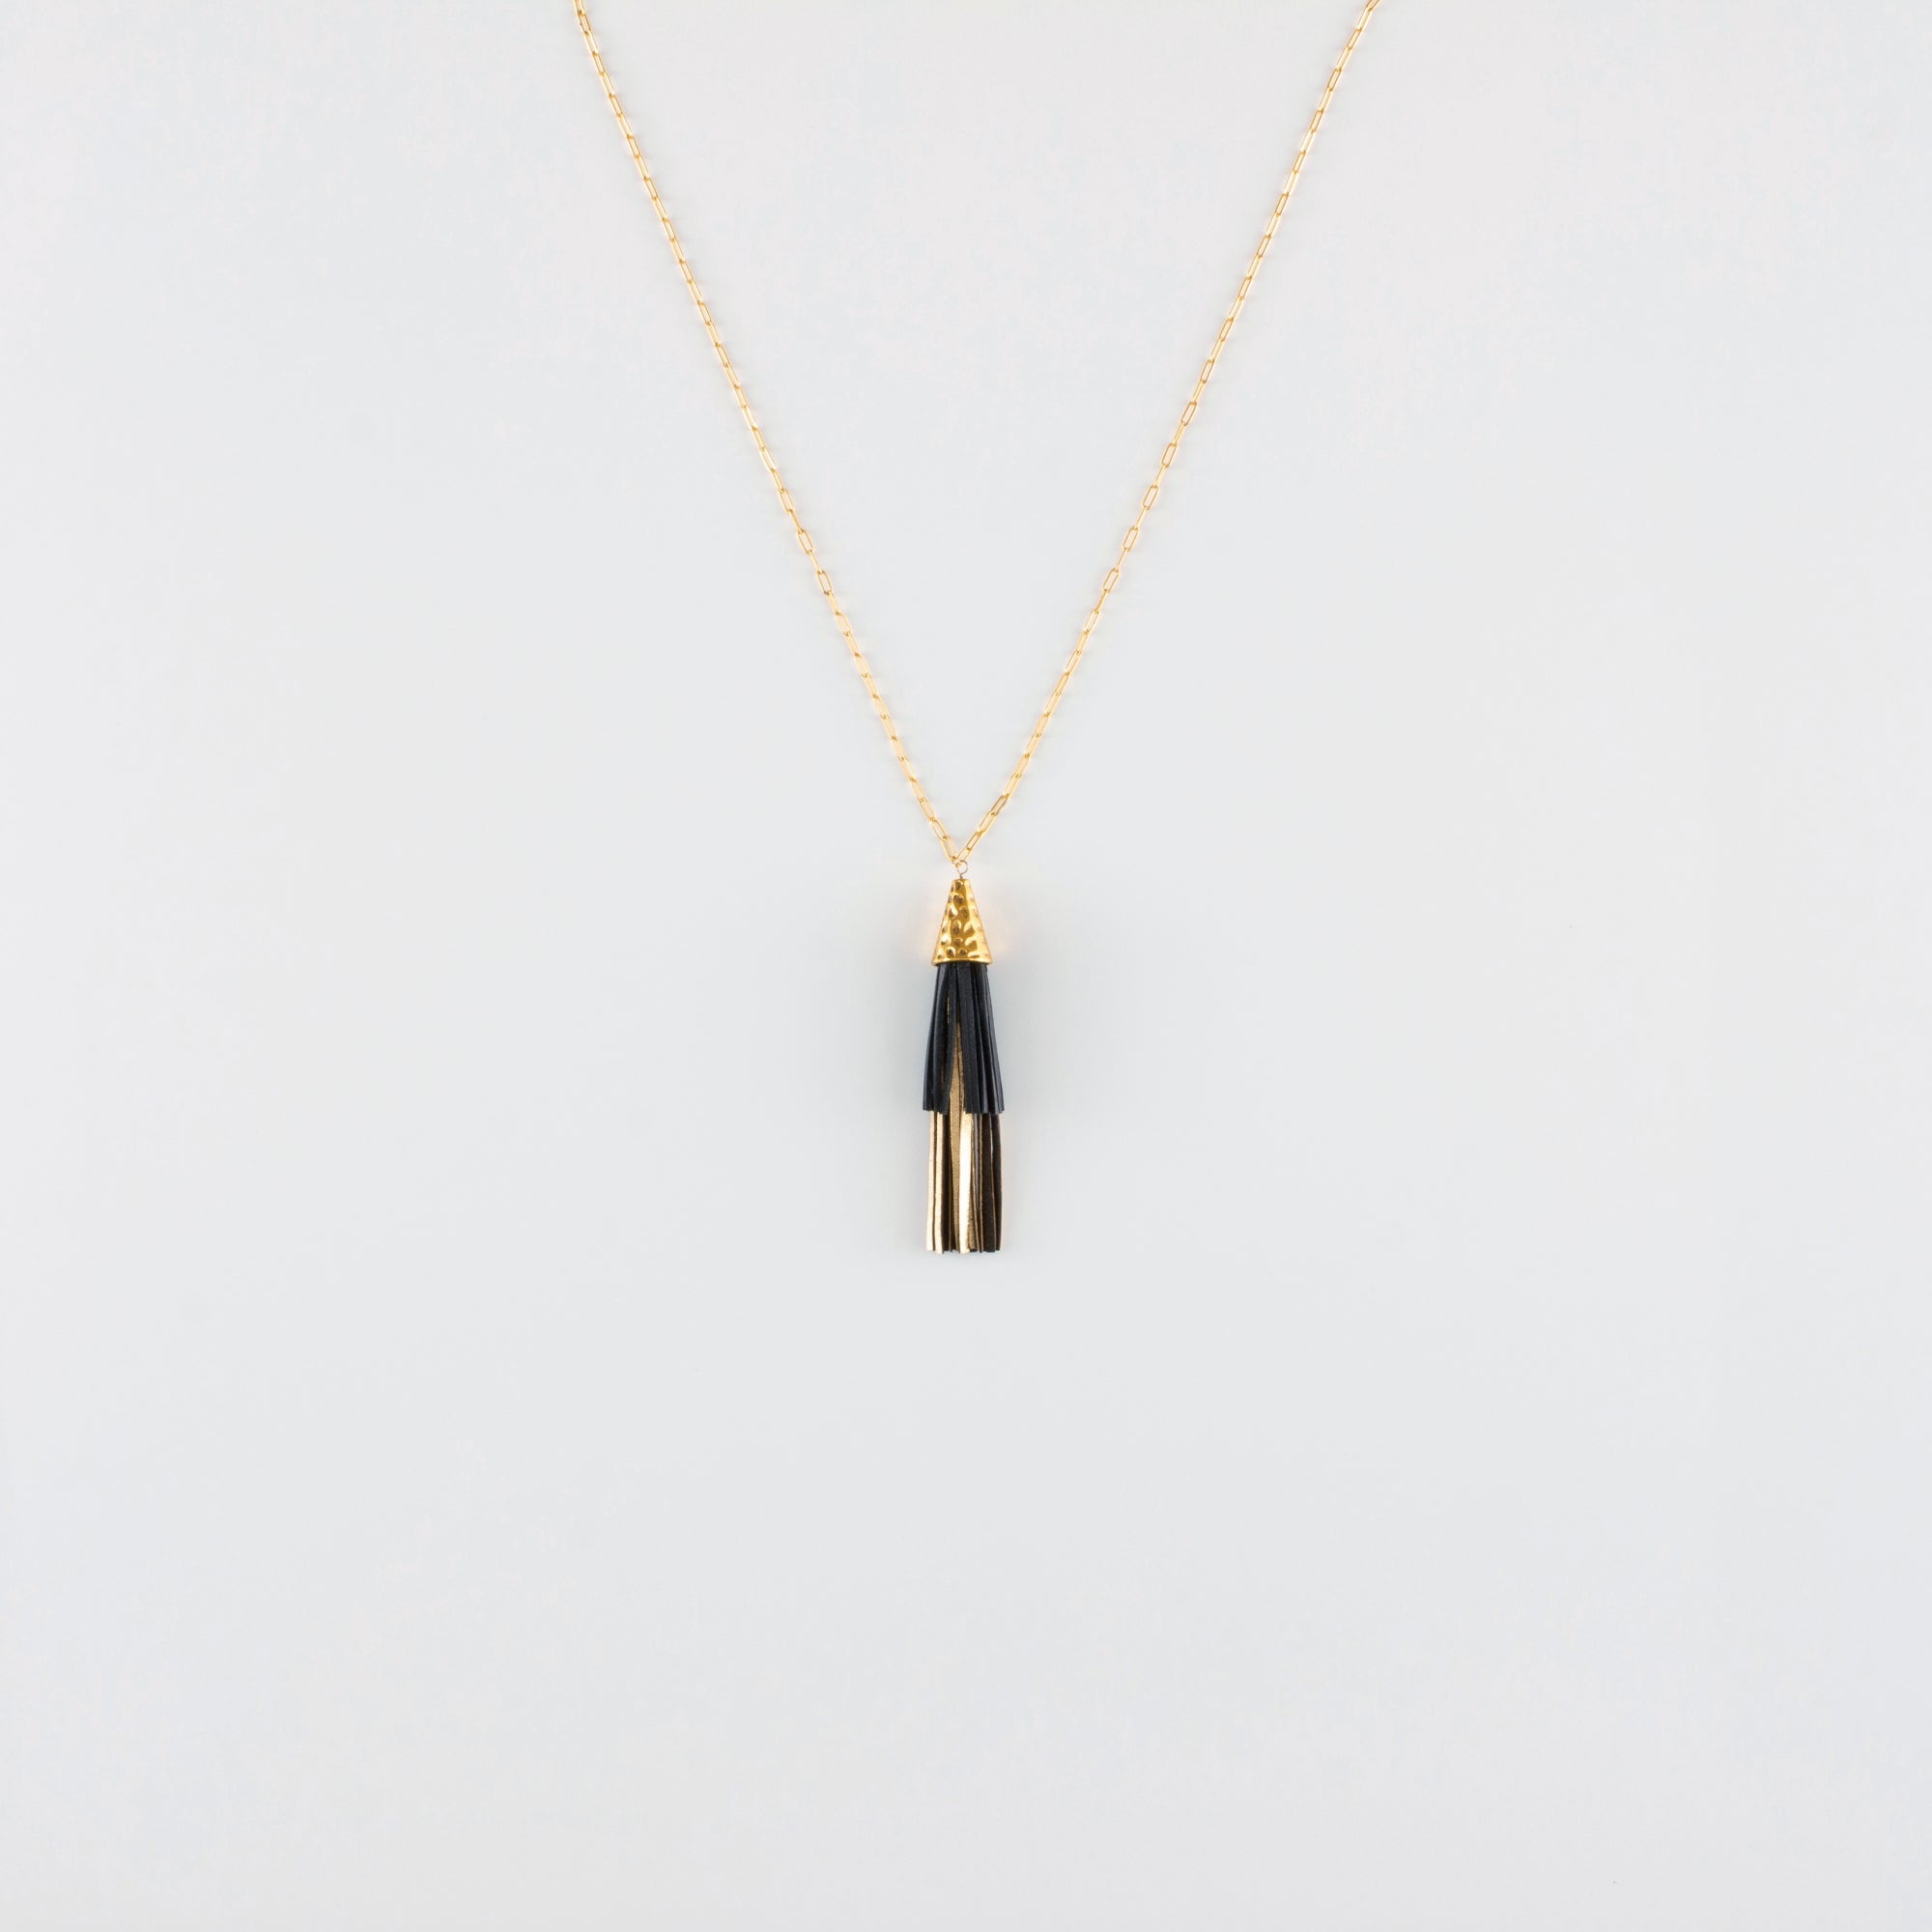 LEATHER DUO TASSEL NECKLACE // GOLD COAST